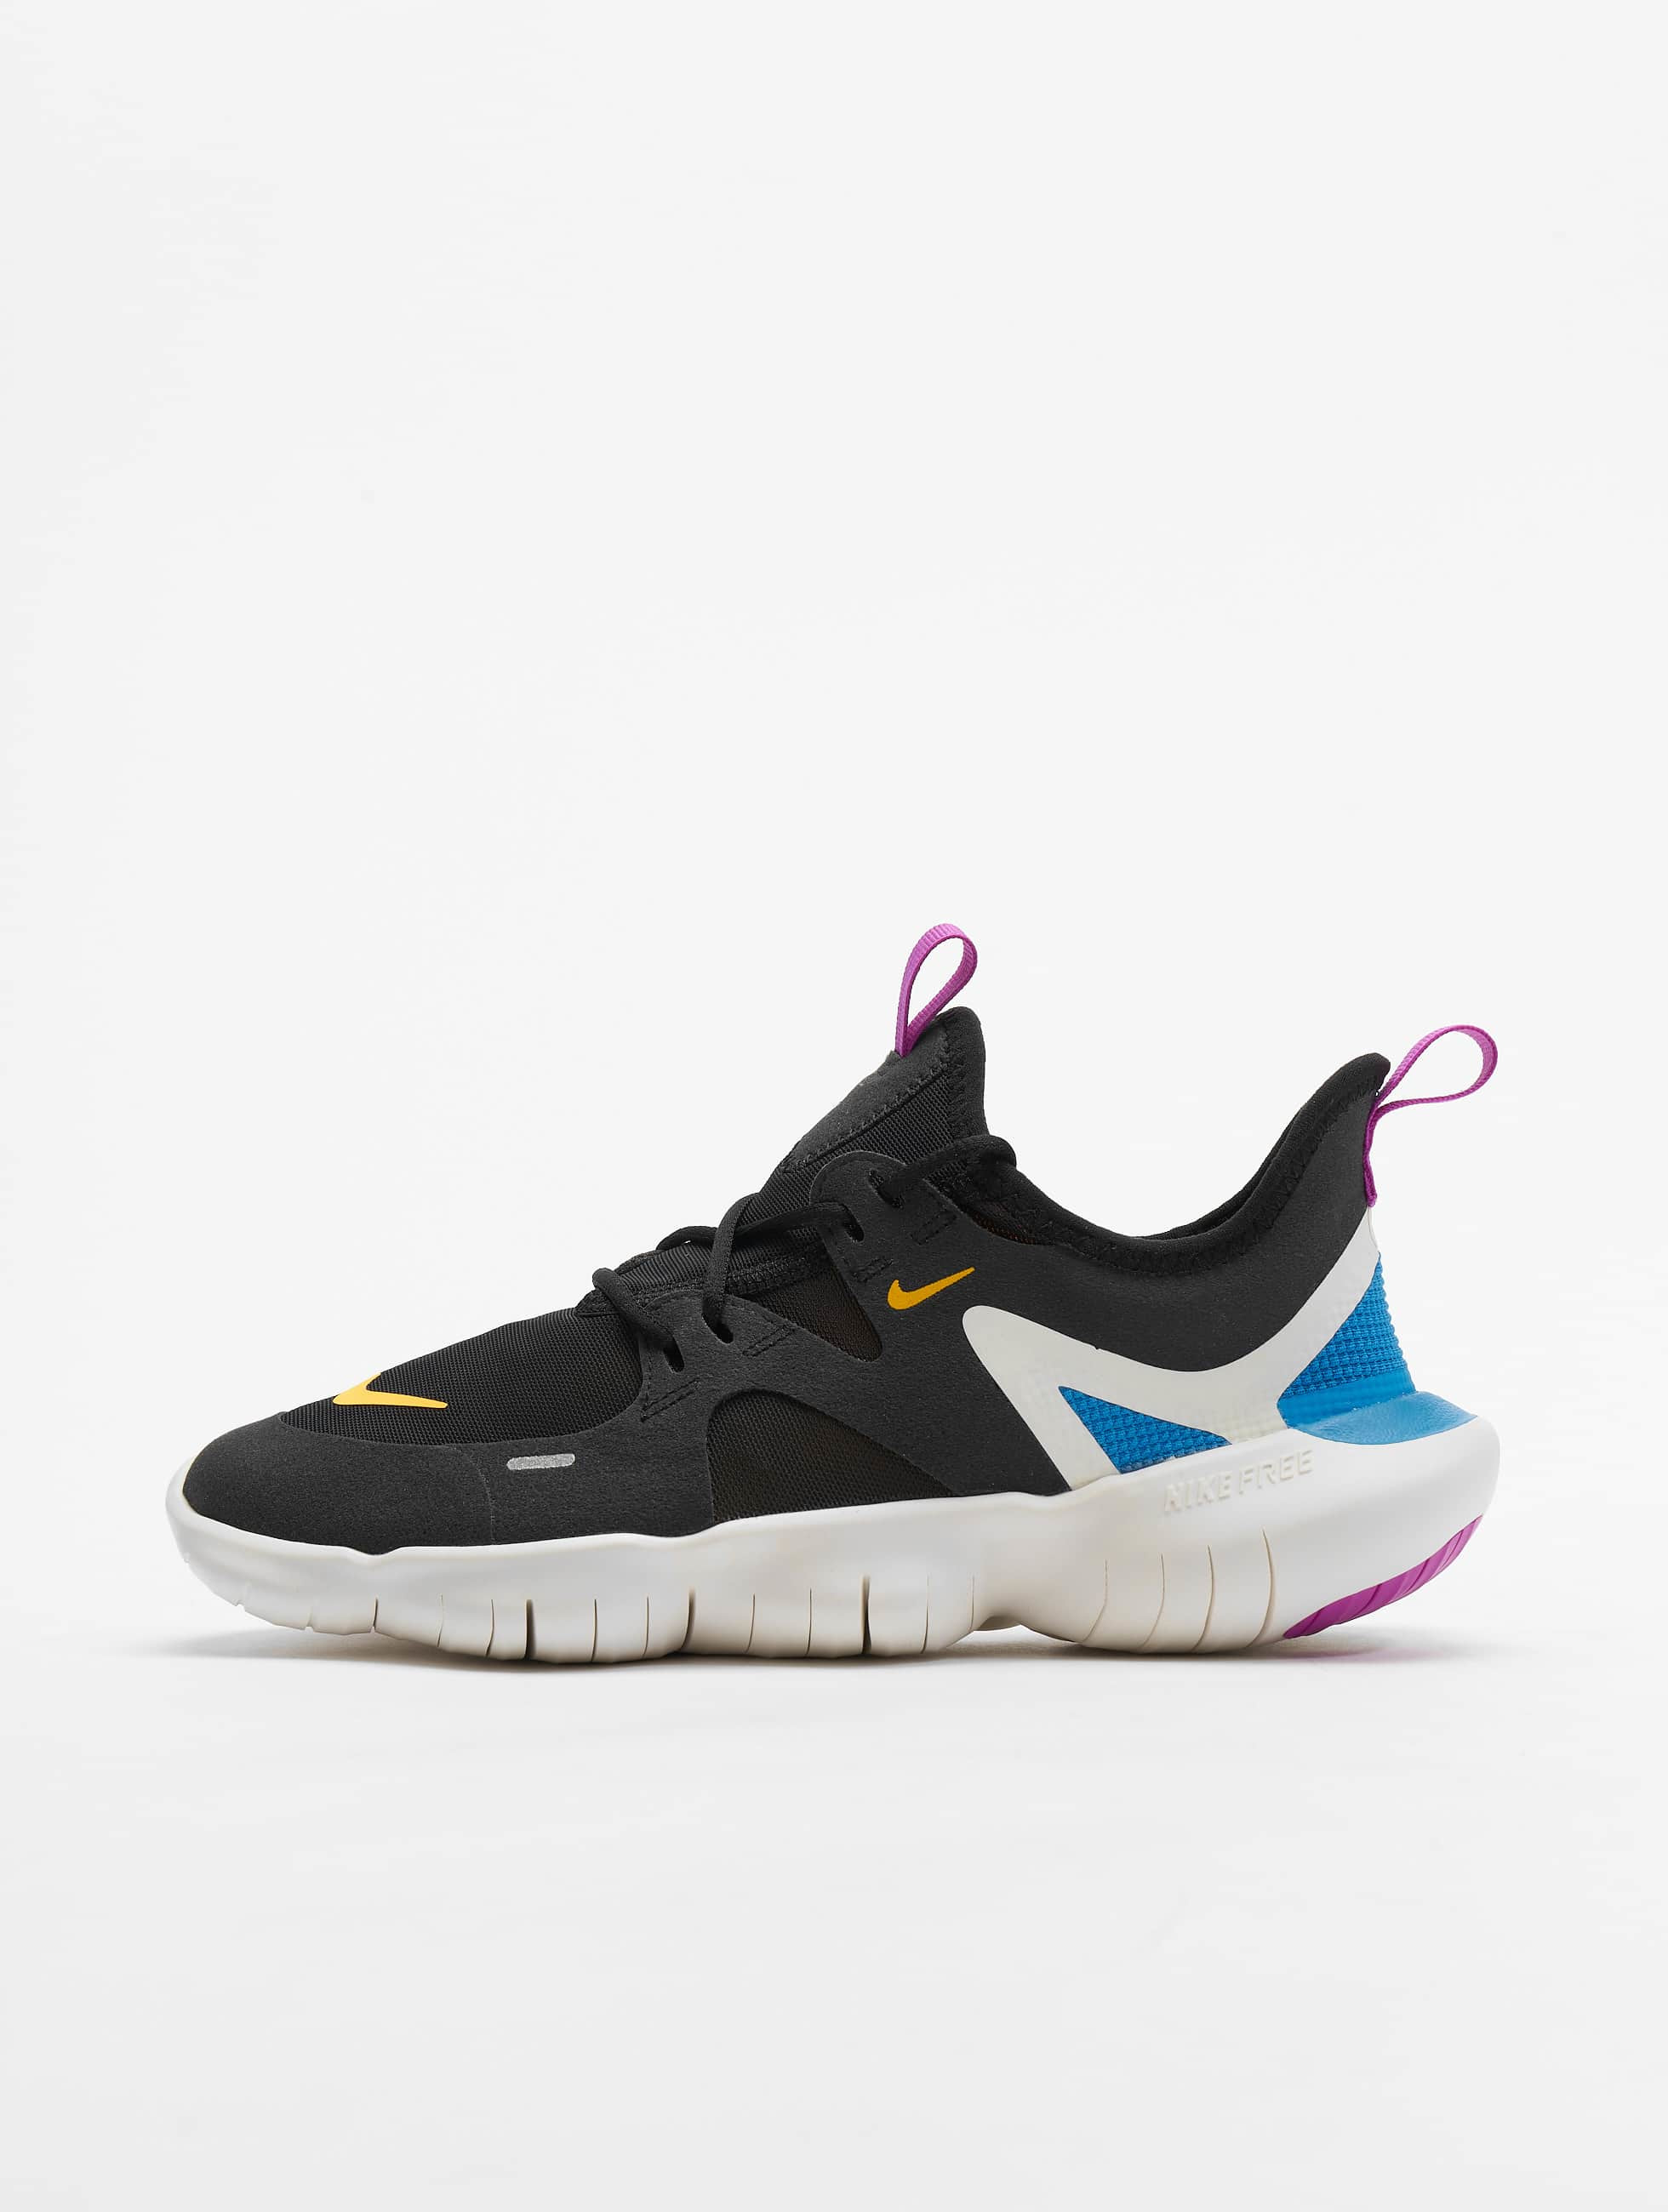 Nike schoen sneaker Free Run 5.0 (GS) in zwart 669632